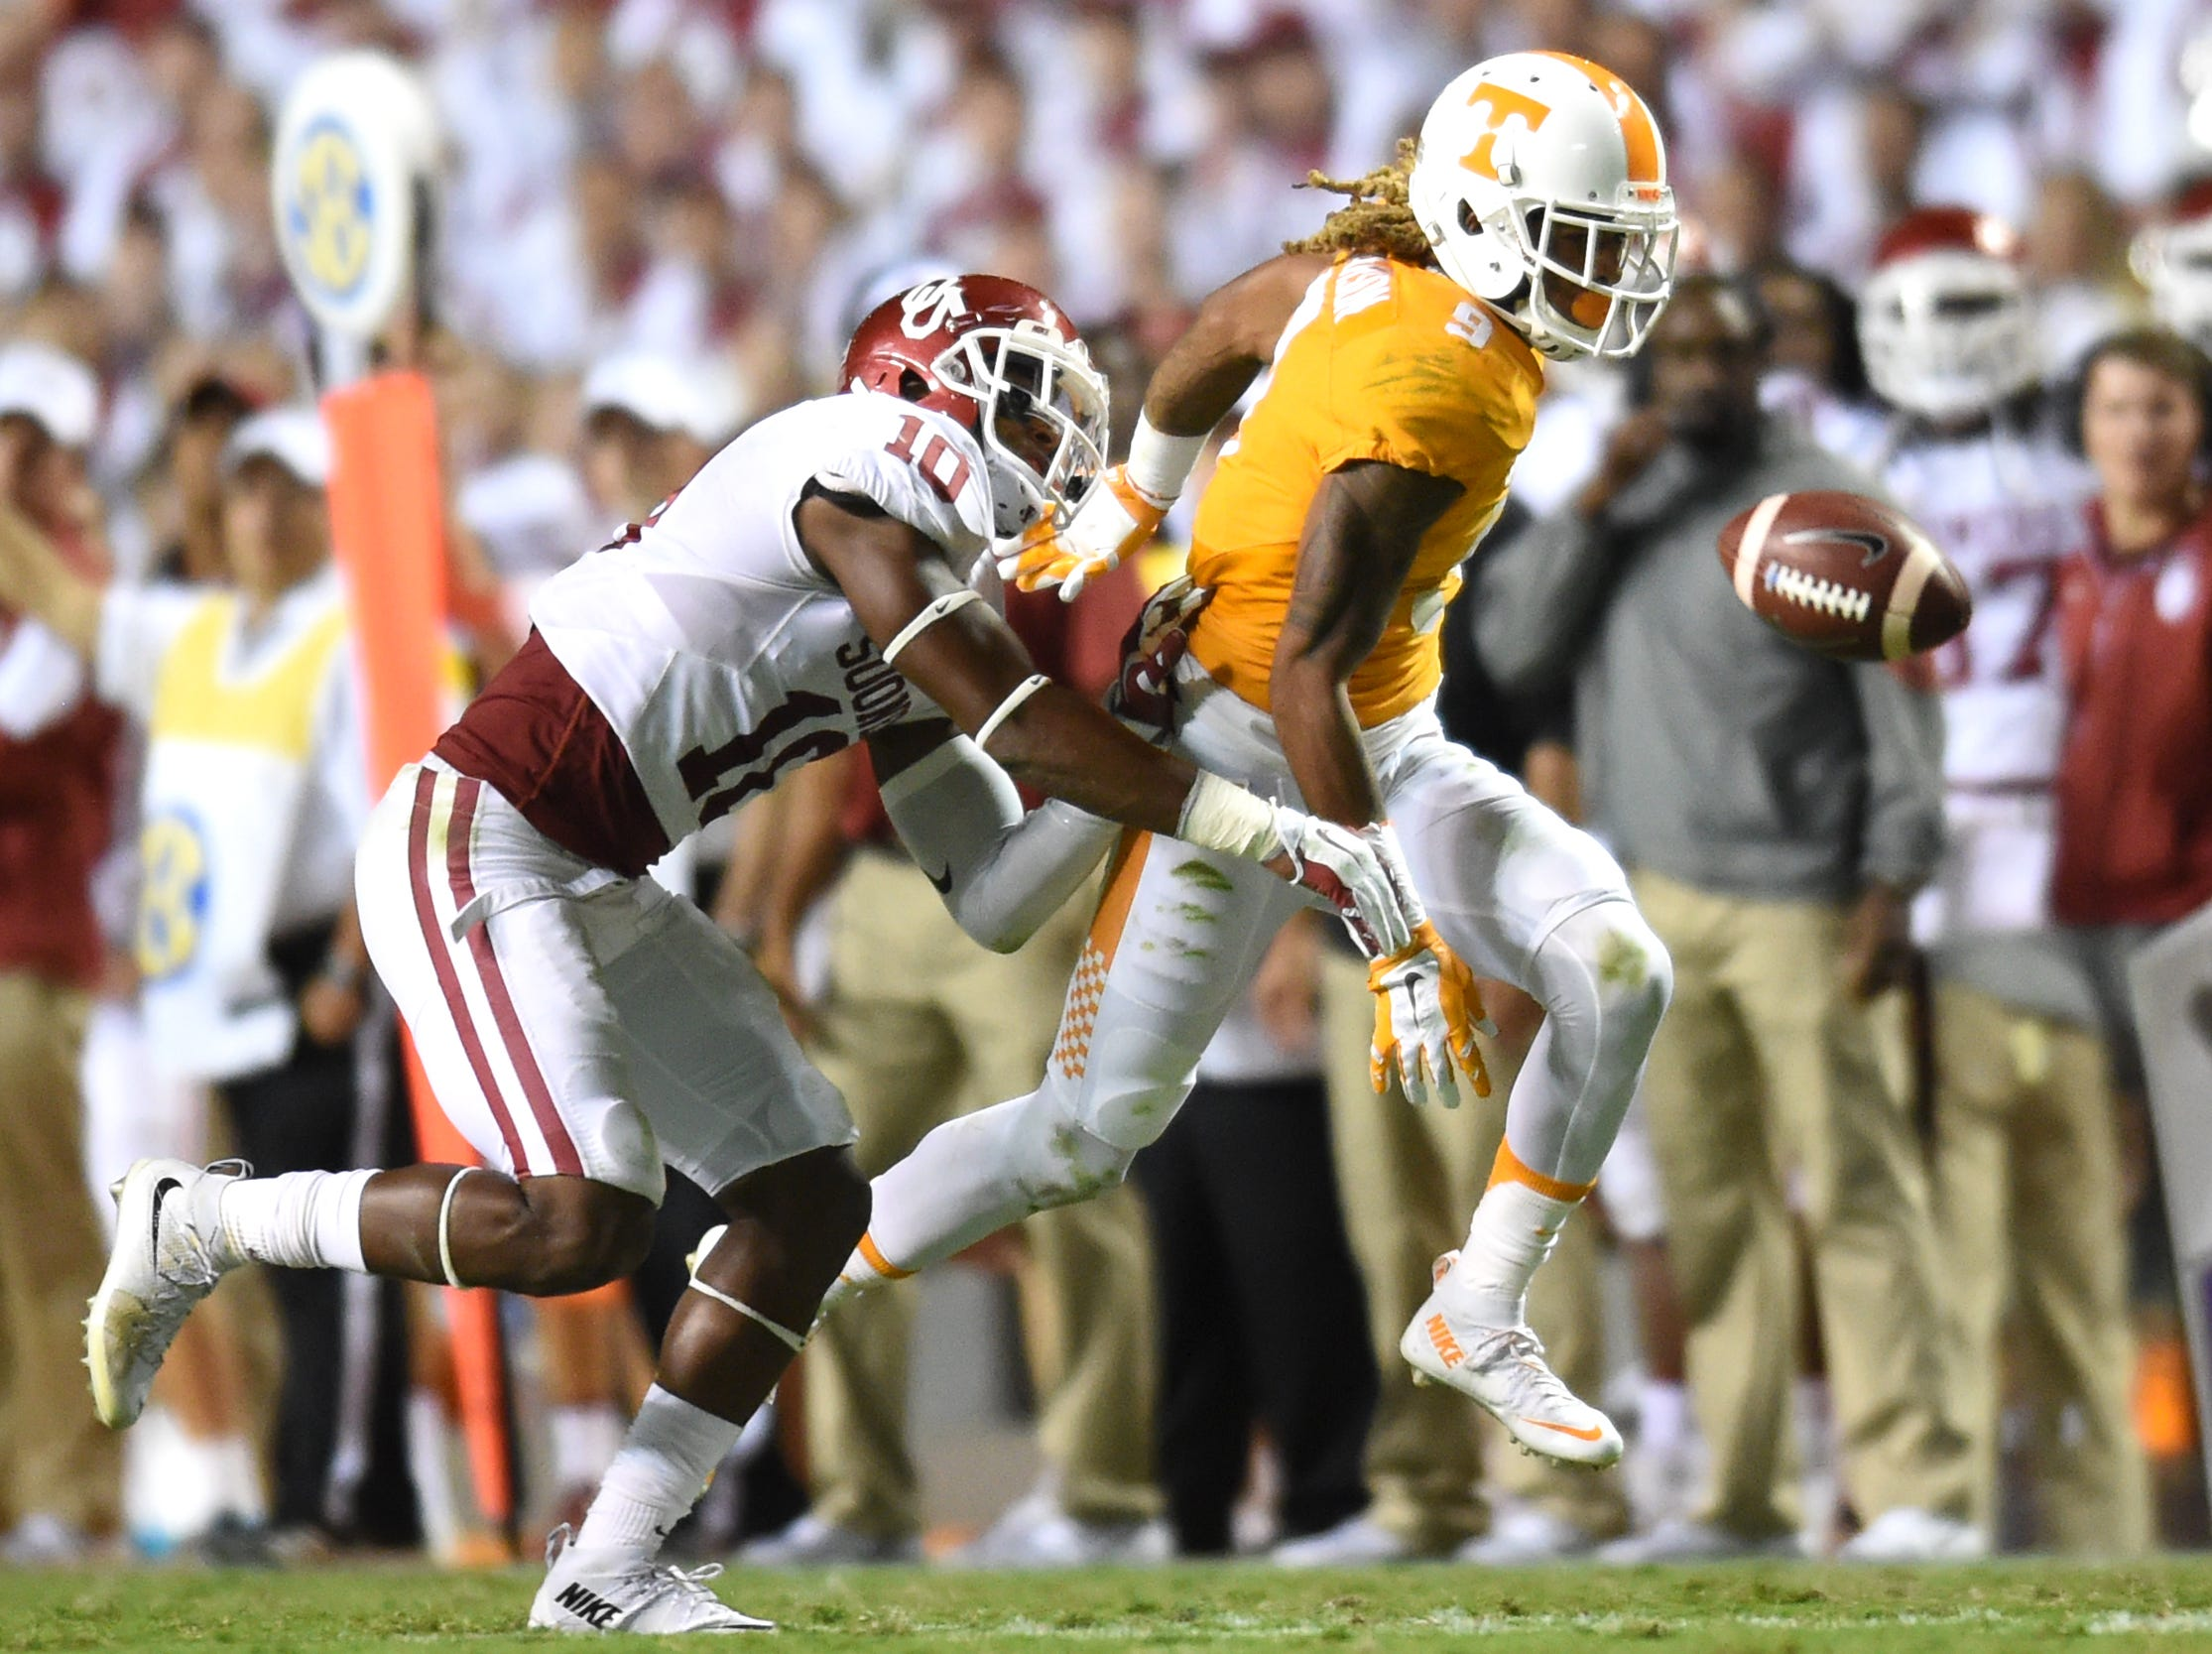 A pass intended for Tennessee wide receiver Von Pearson (9) falls incomplete as Oklahoma safety Steven Parker (10) defends during the second half at Neyland Stadium on Saturday, Sept. 12, 2015 in Knoxville, Tenn.